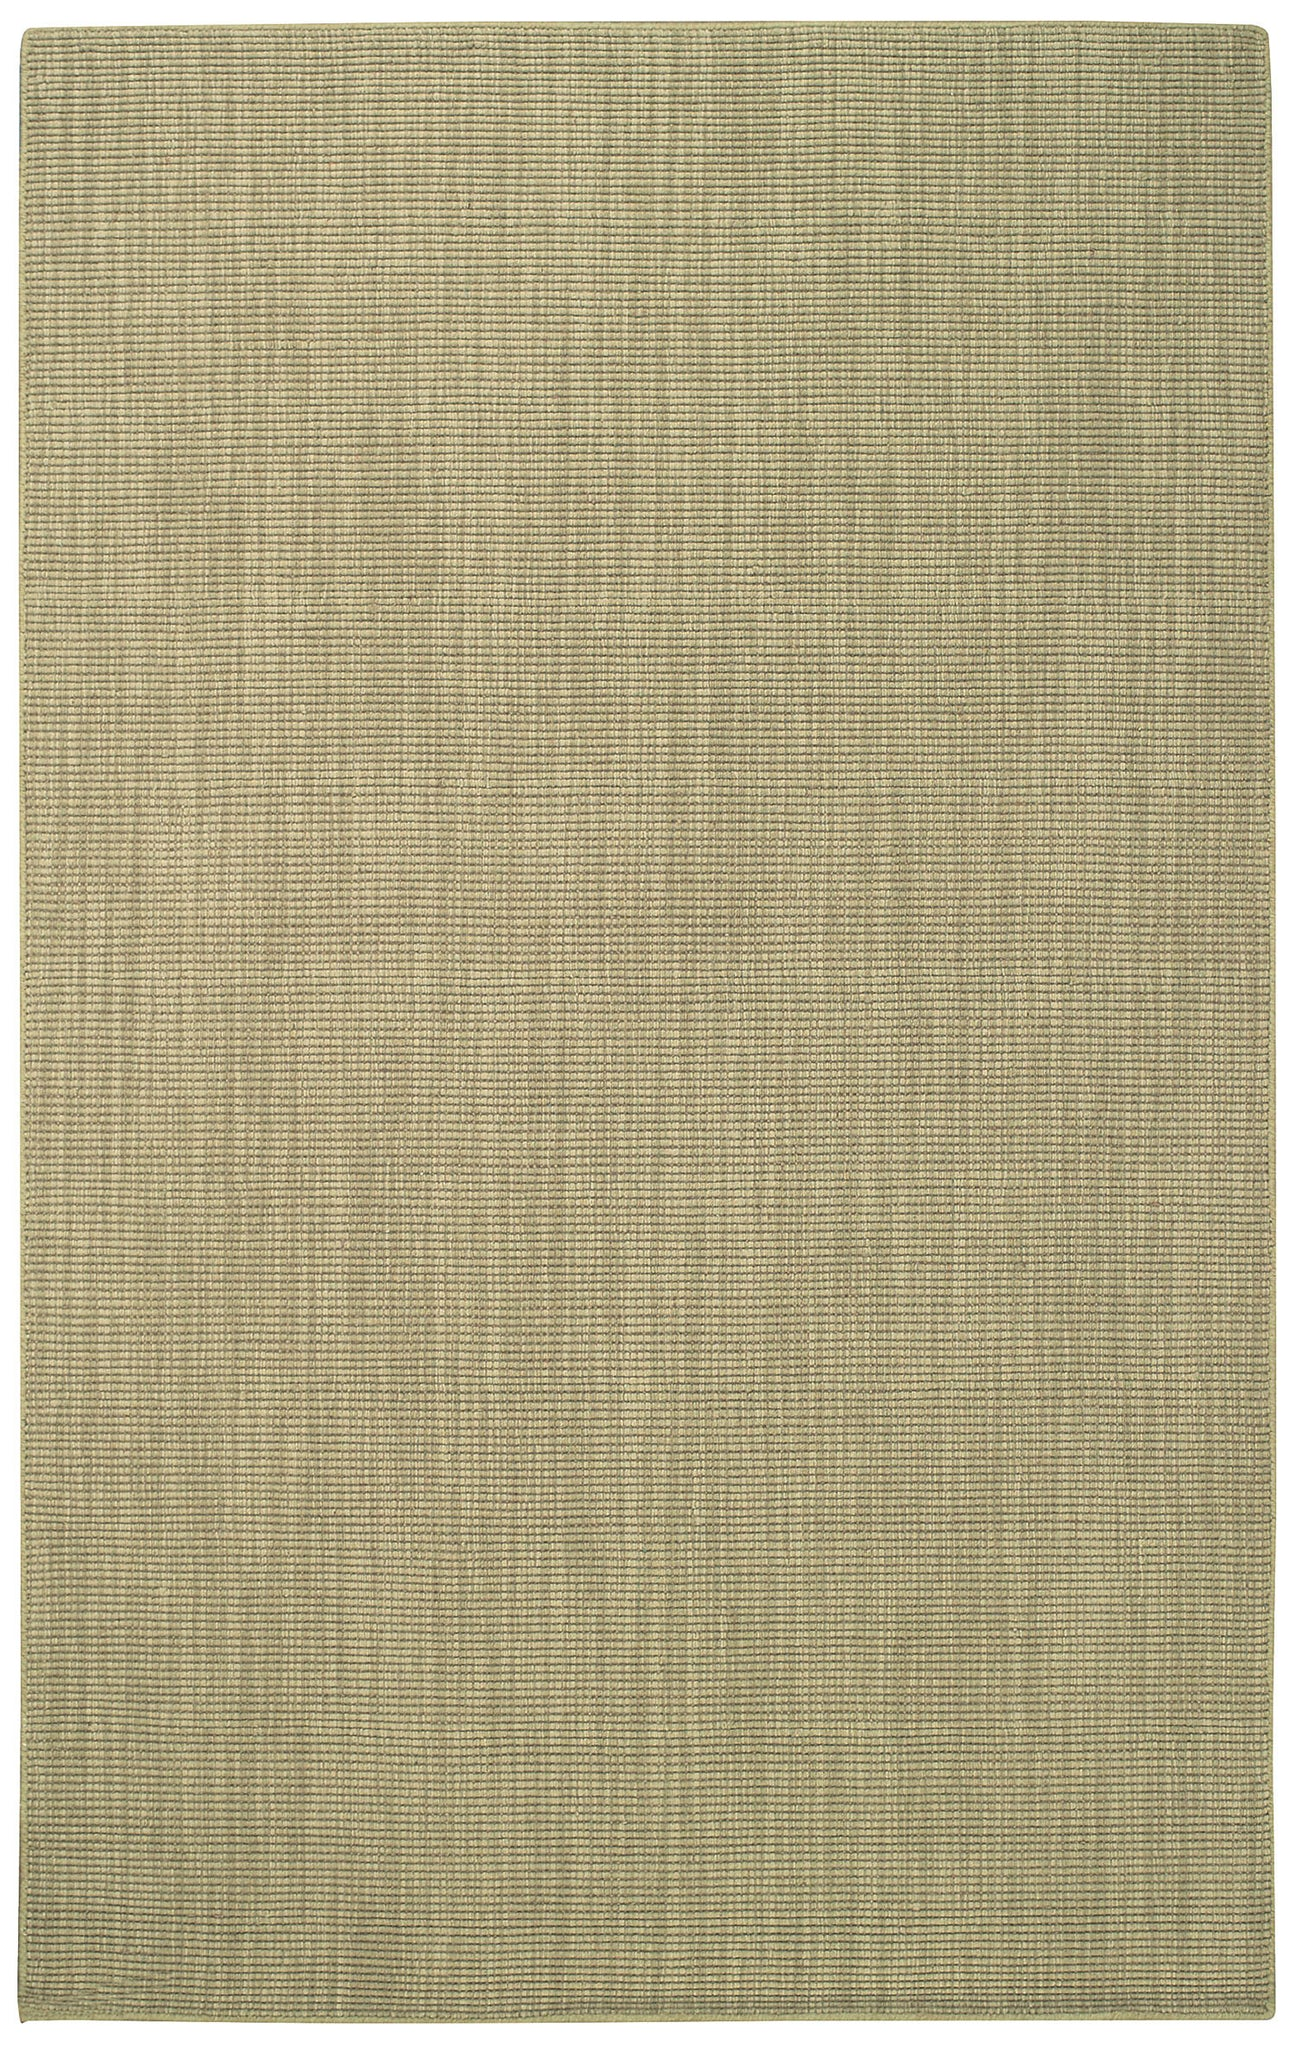 Capel Hermitage 9531 Green 200 Area Rug main image